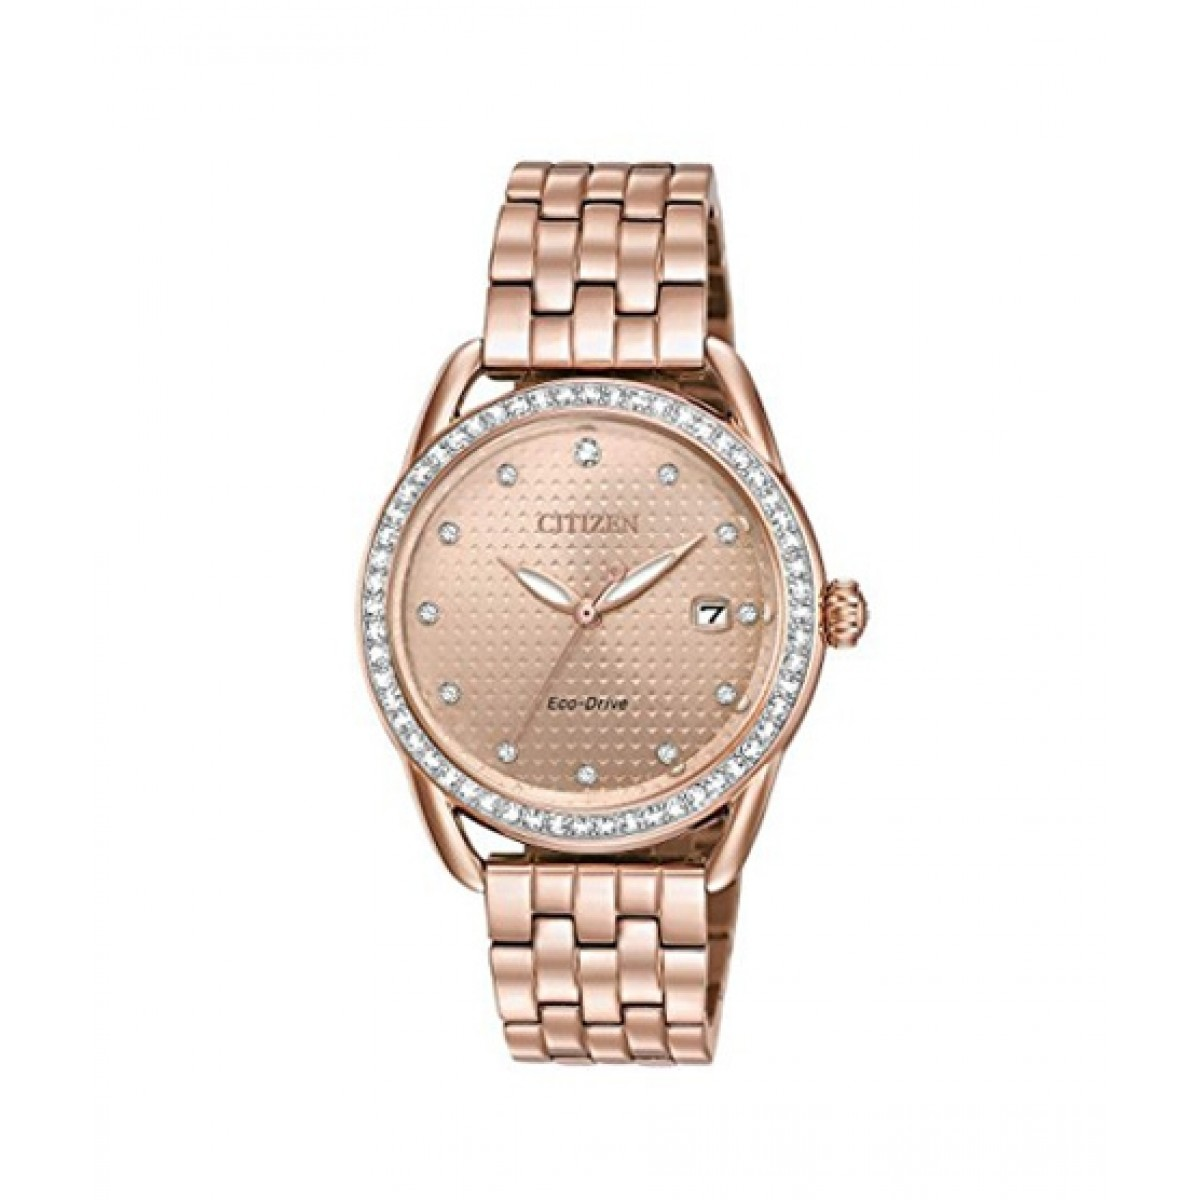 2df67c6399 Citizen Eco-Drive LTR Women's Watch Price in Pakistan | Buy Citizen Women's  Watch Rose Gold (FE6113-57X) | iShopping.pk